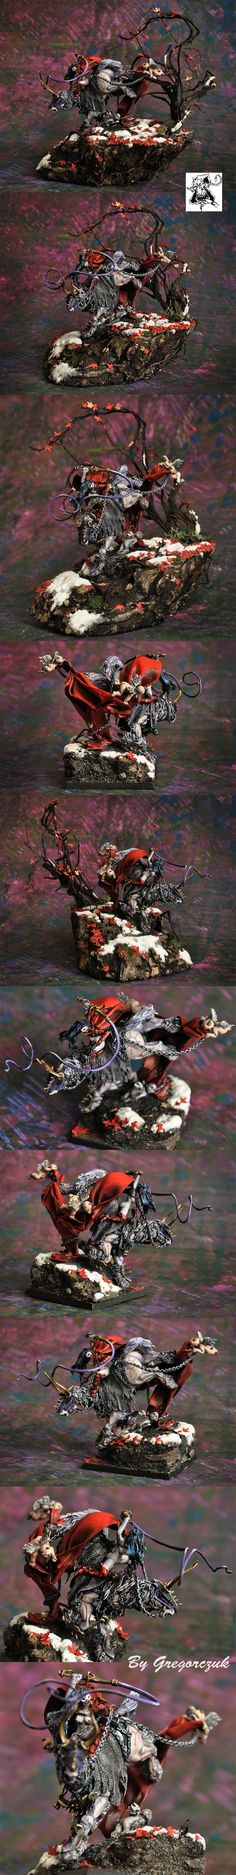 Chaos Slaneesh Lord on Demonic Steed